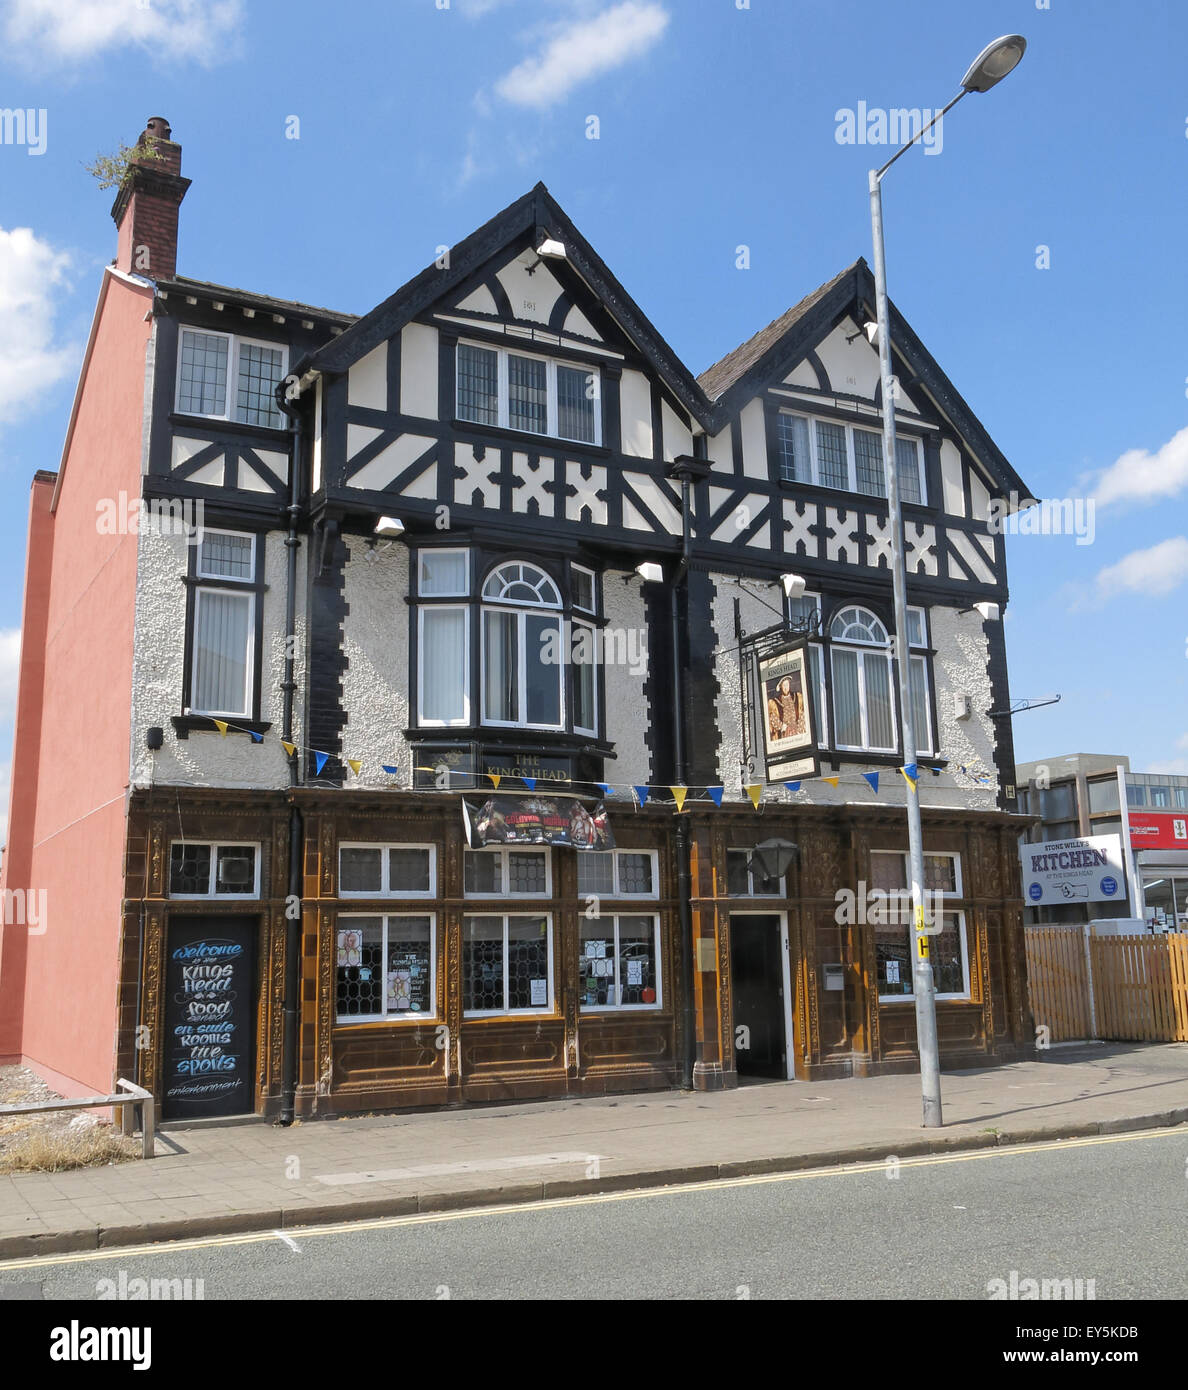 The Kings Head Pub, Winwick St, Warrington, Cheshire, England, UK - Stock Image